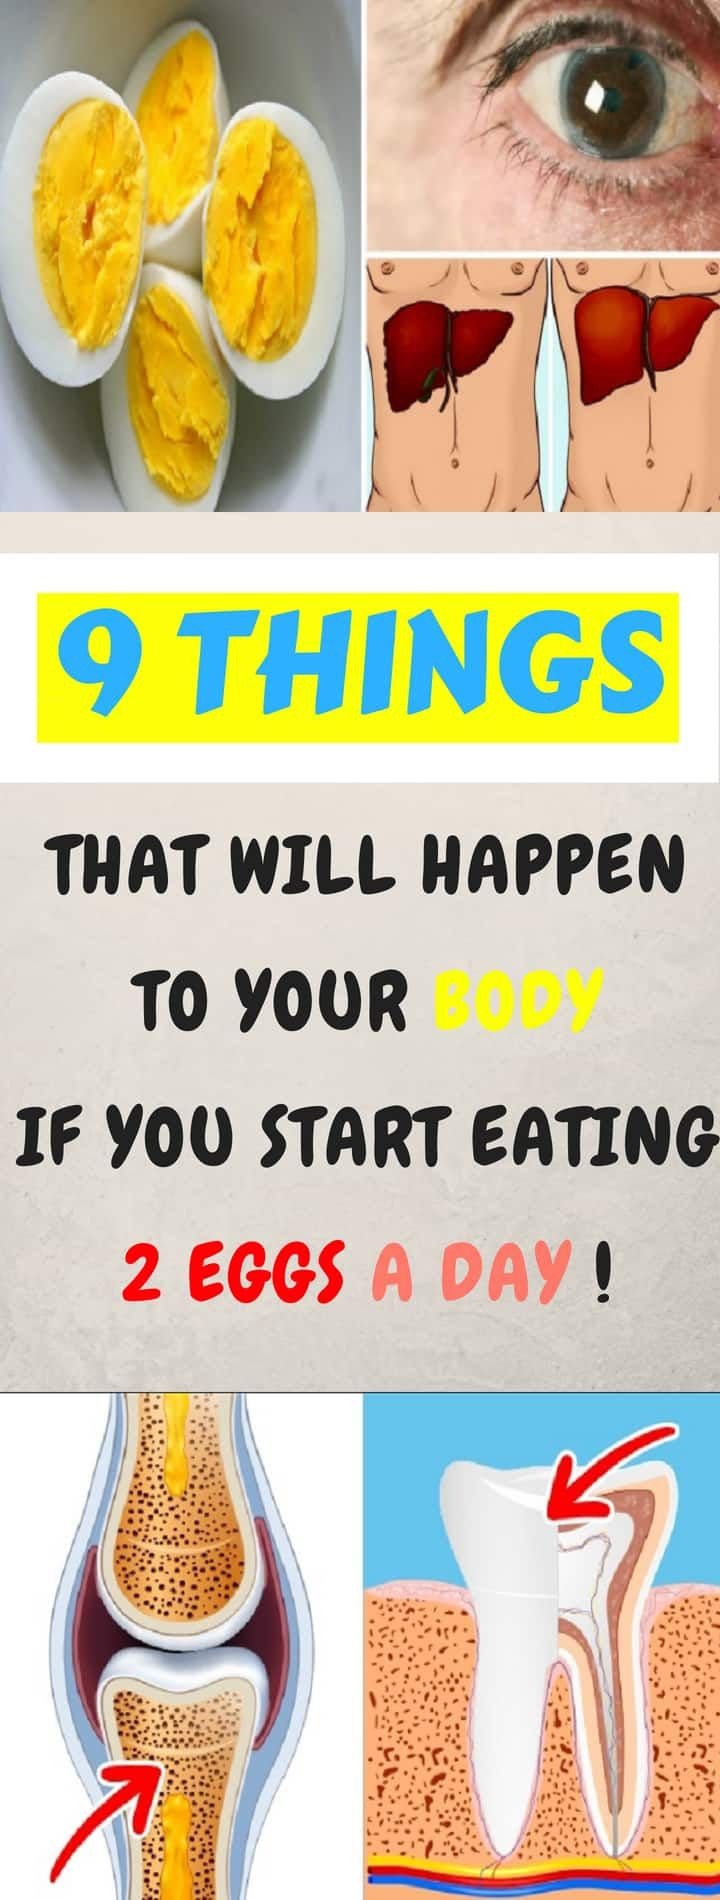 9 Things That Will Happen To Your Body If You Start Eating 2 Eggs